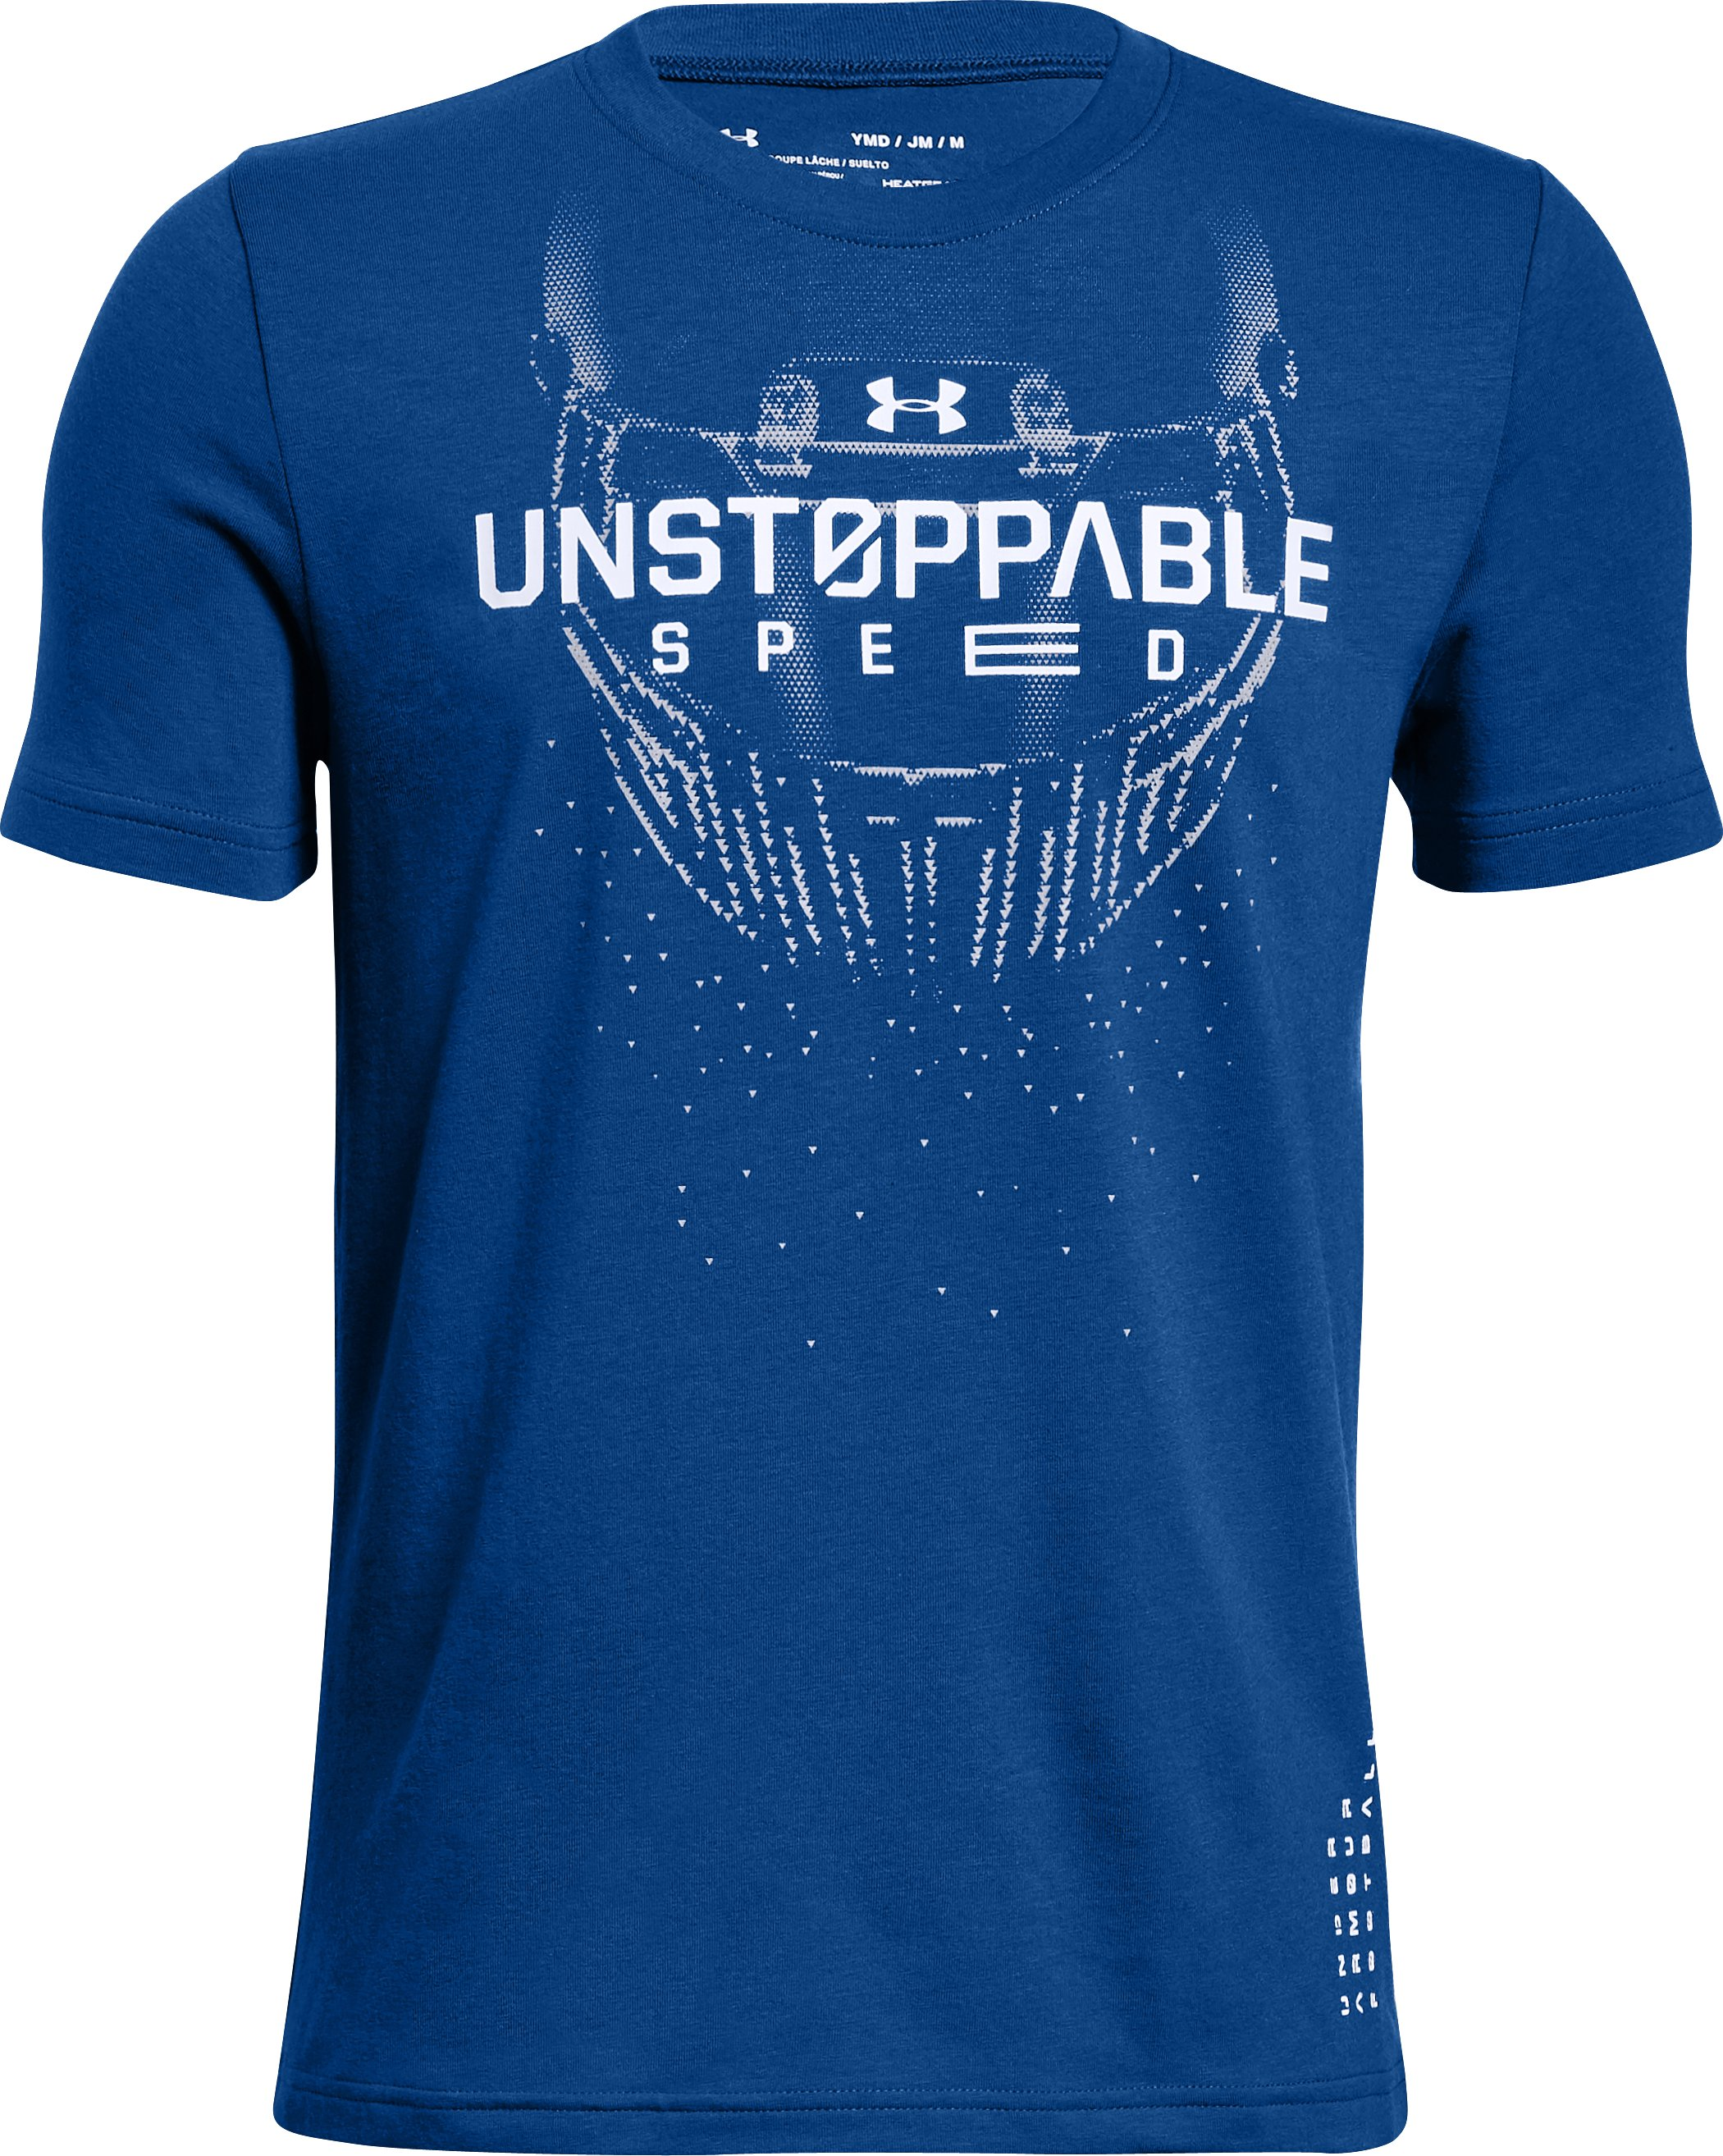 Boys' UA Unstoppable Speed T-Shirt, Royal